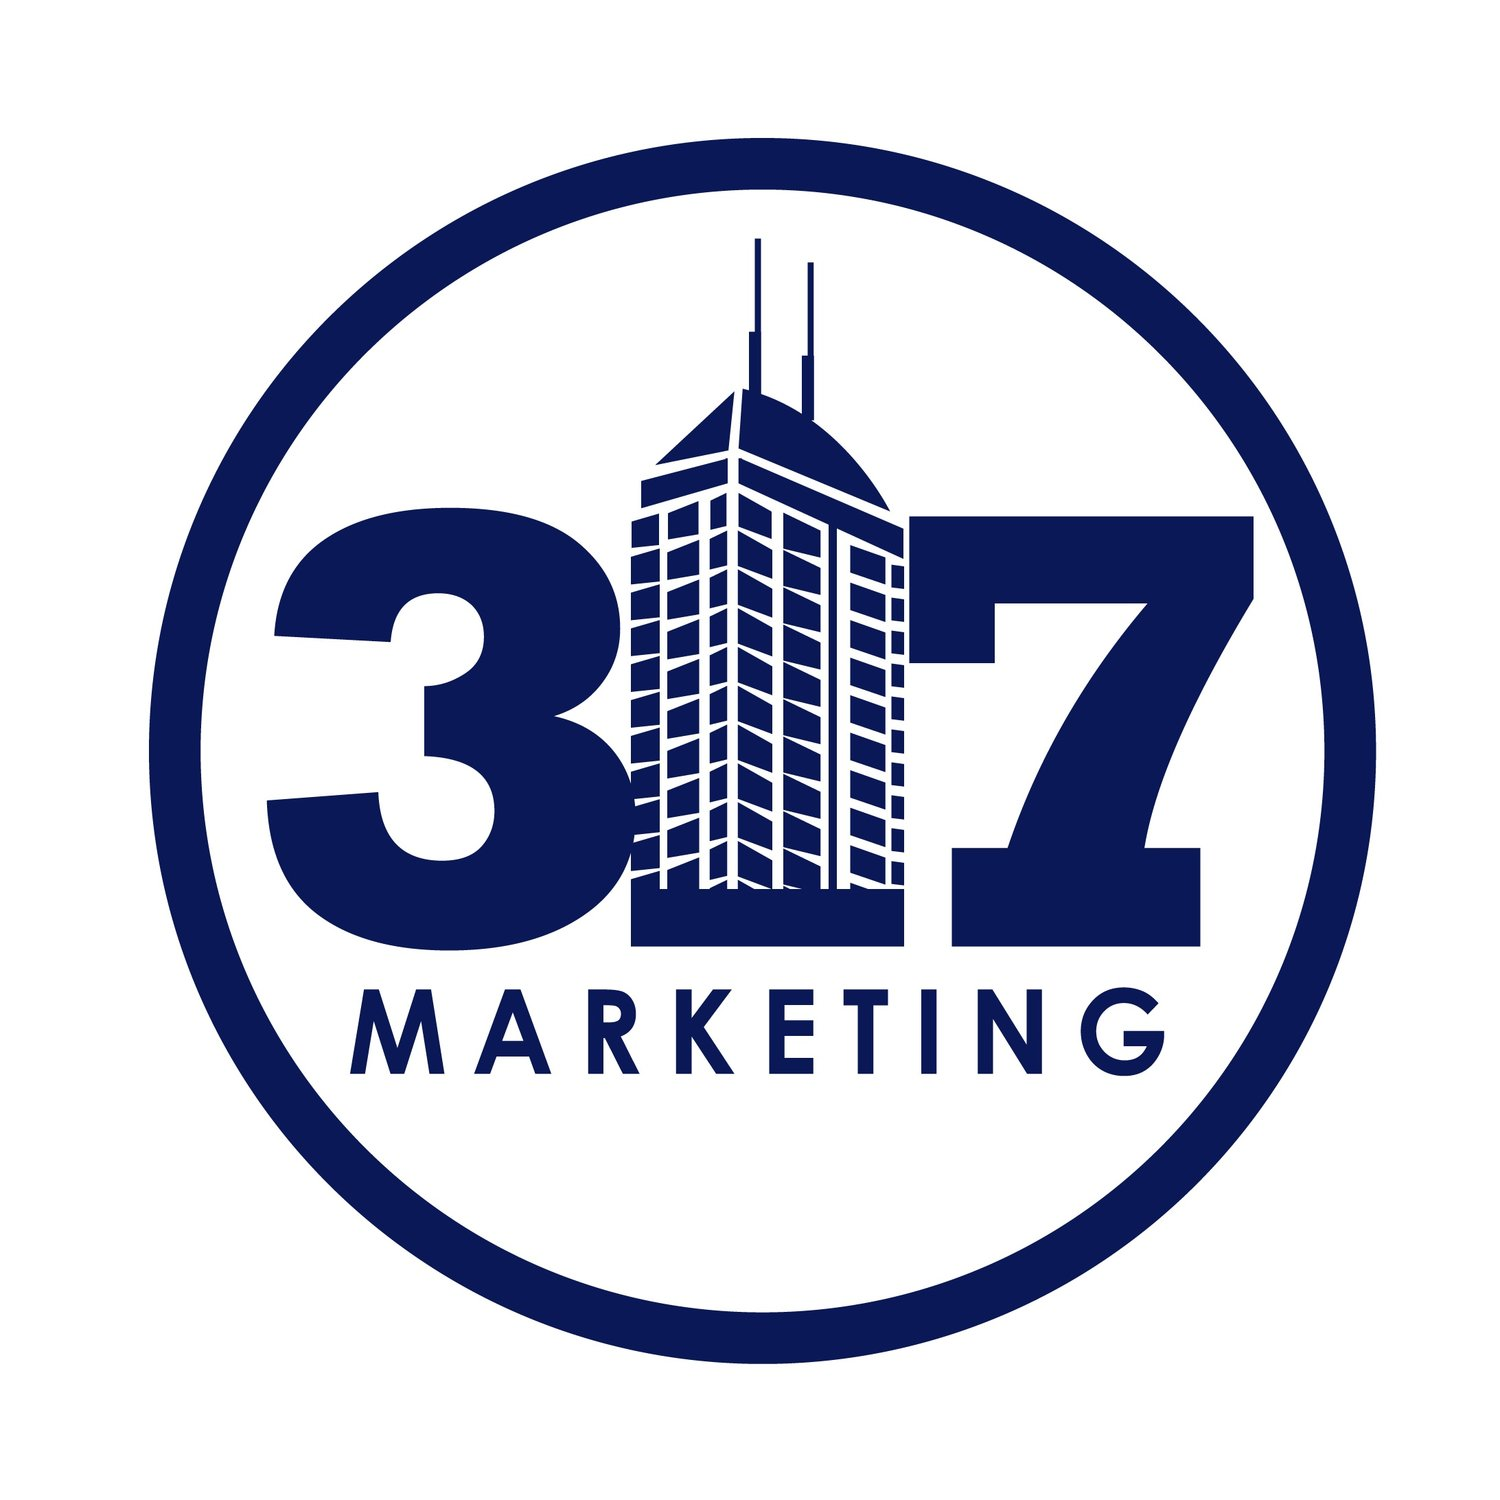 317 Marketing LLC | Local Marketing, Local SEO, SEM, SMM